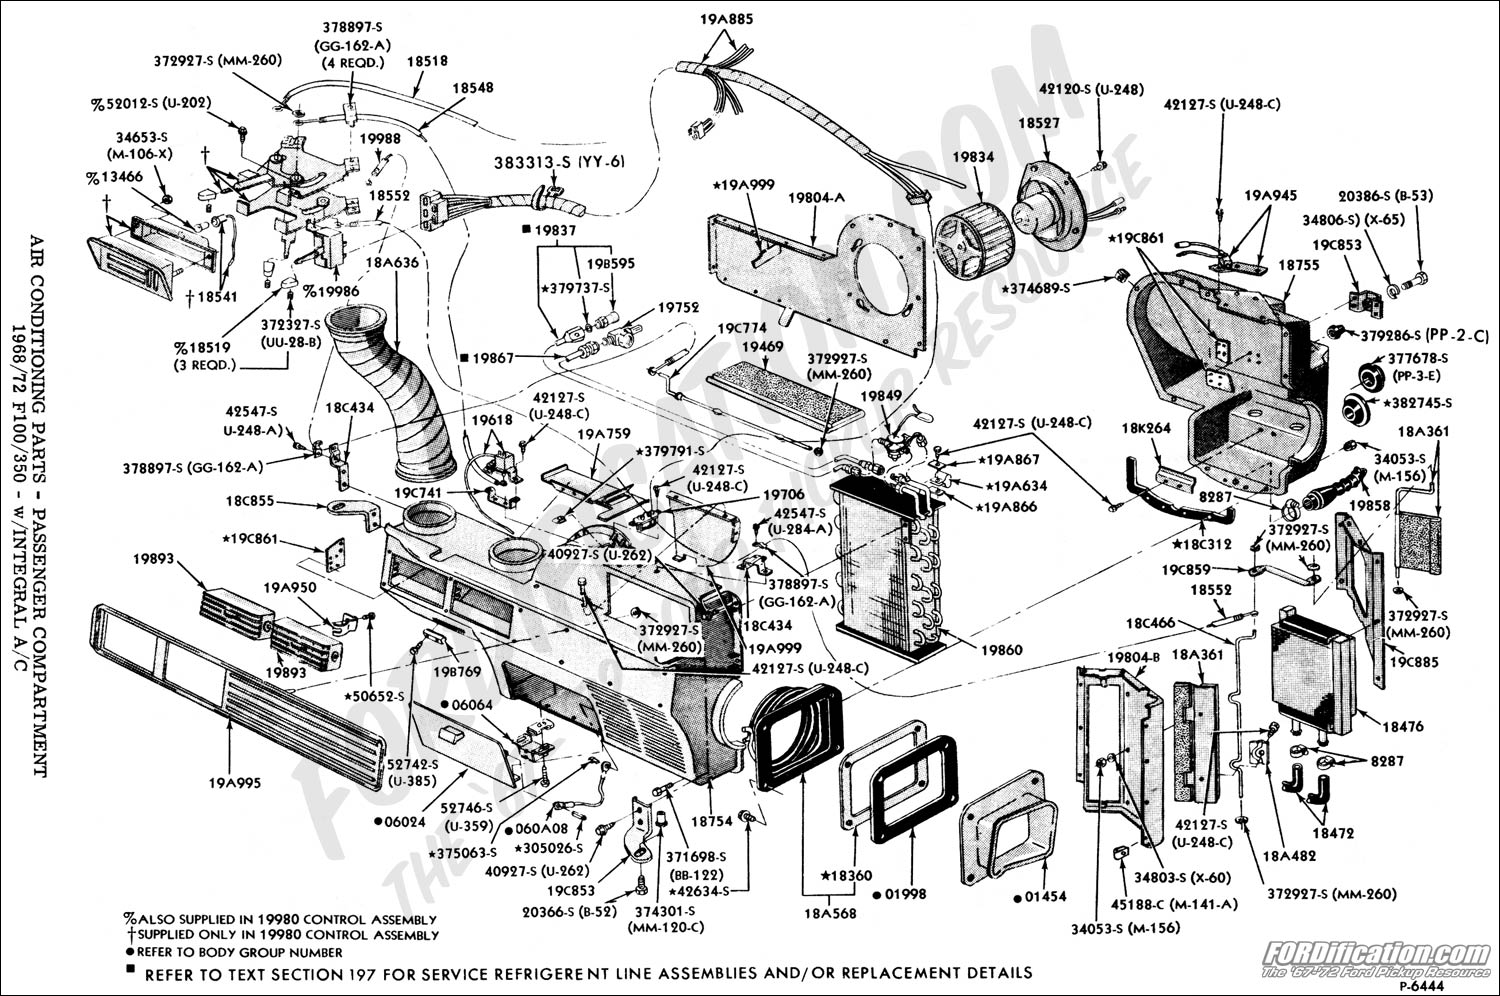 Schematics f likewise 2003 Lincoln Navigator Air Ride Diagram as well Ford Explorer Fuel Pump Wiring Diagram likewise 98 Ford Expedition Starter Wiring Diagram in addition 2000 Ford Explorer Exhaust Diagram. on 2000 ford expedition wiring diagram